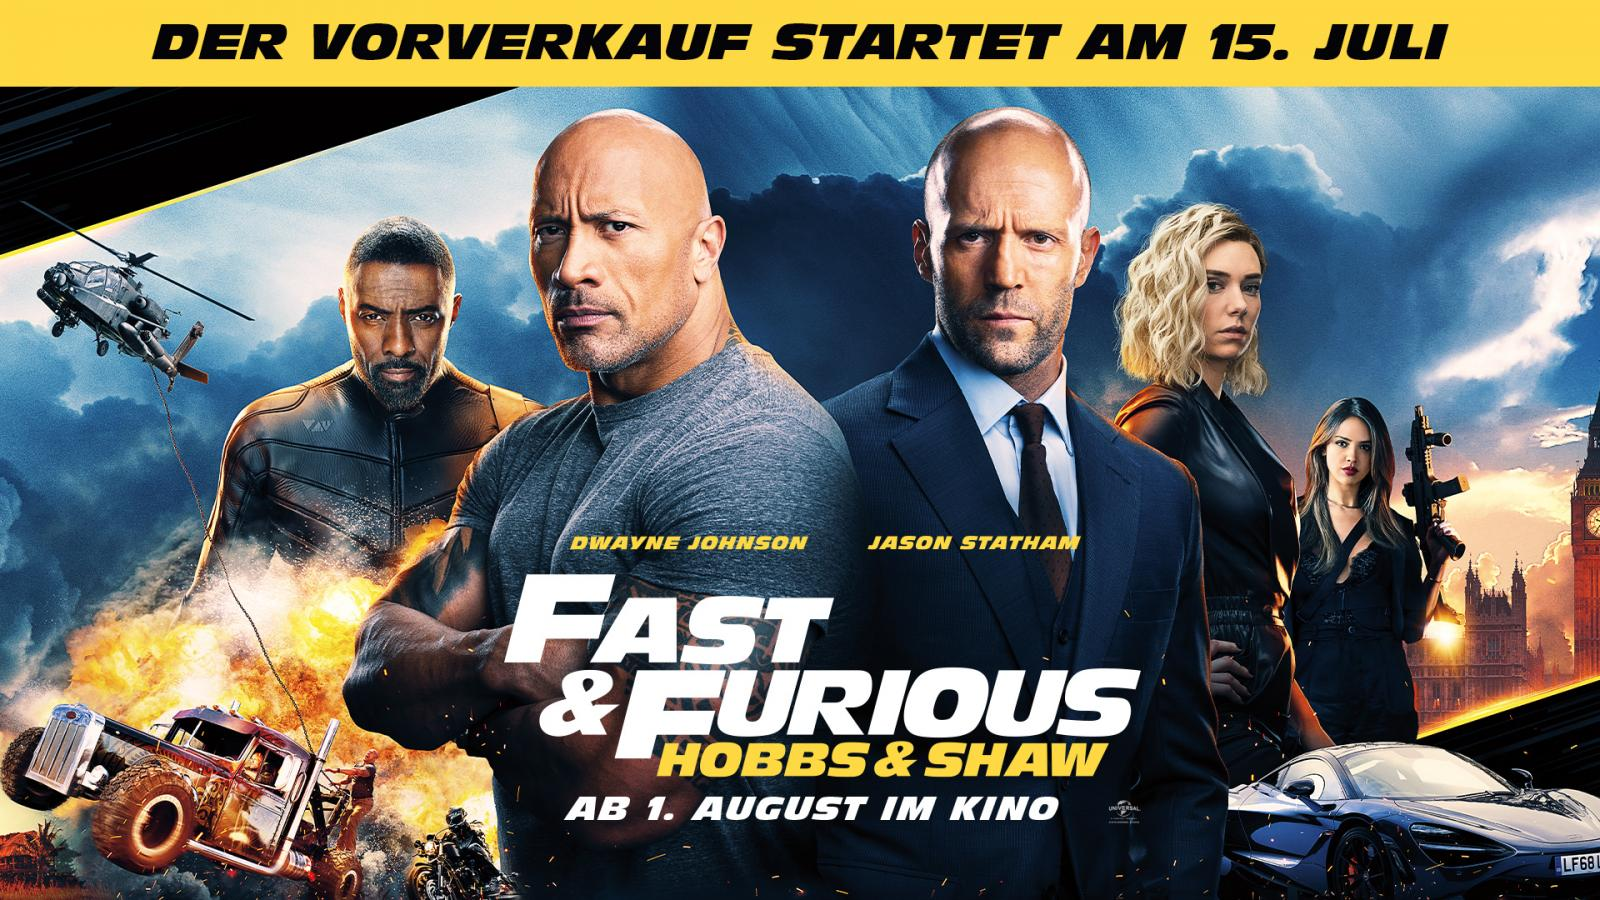 VVK Fast and Forious: Hobbs & Shaw